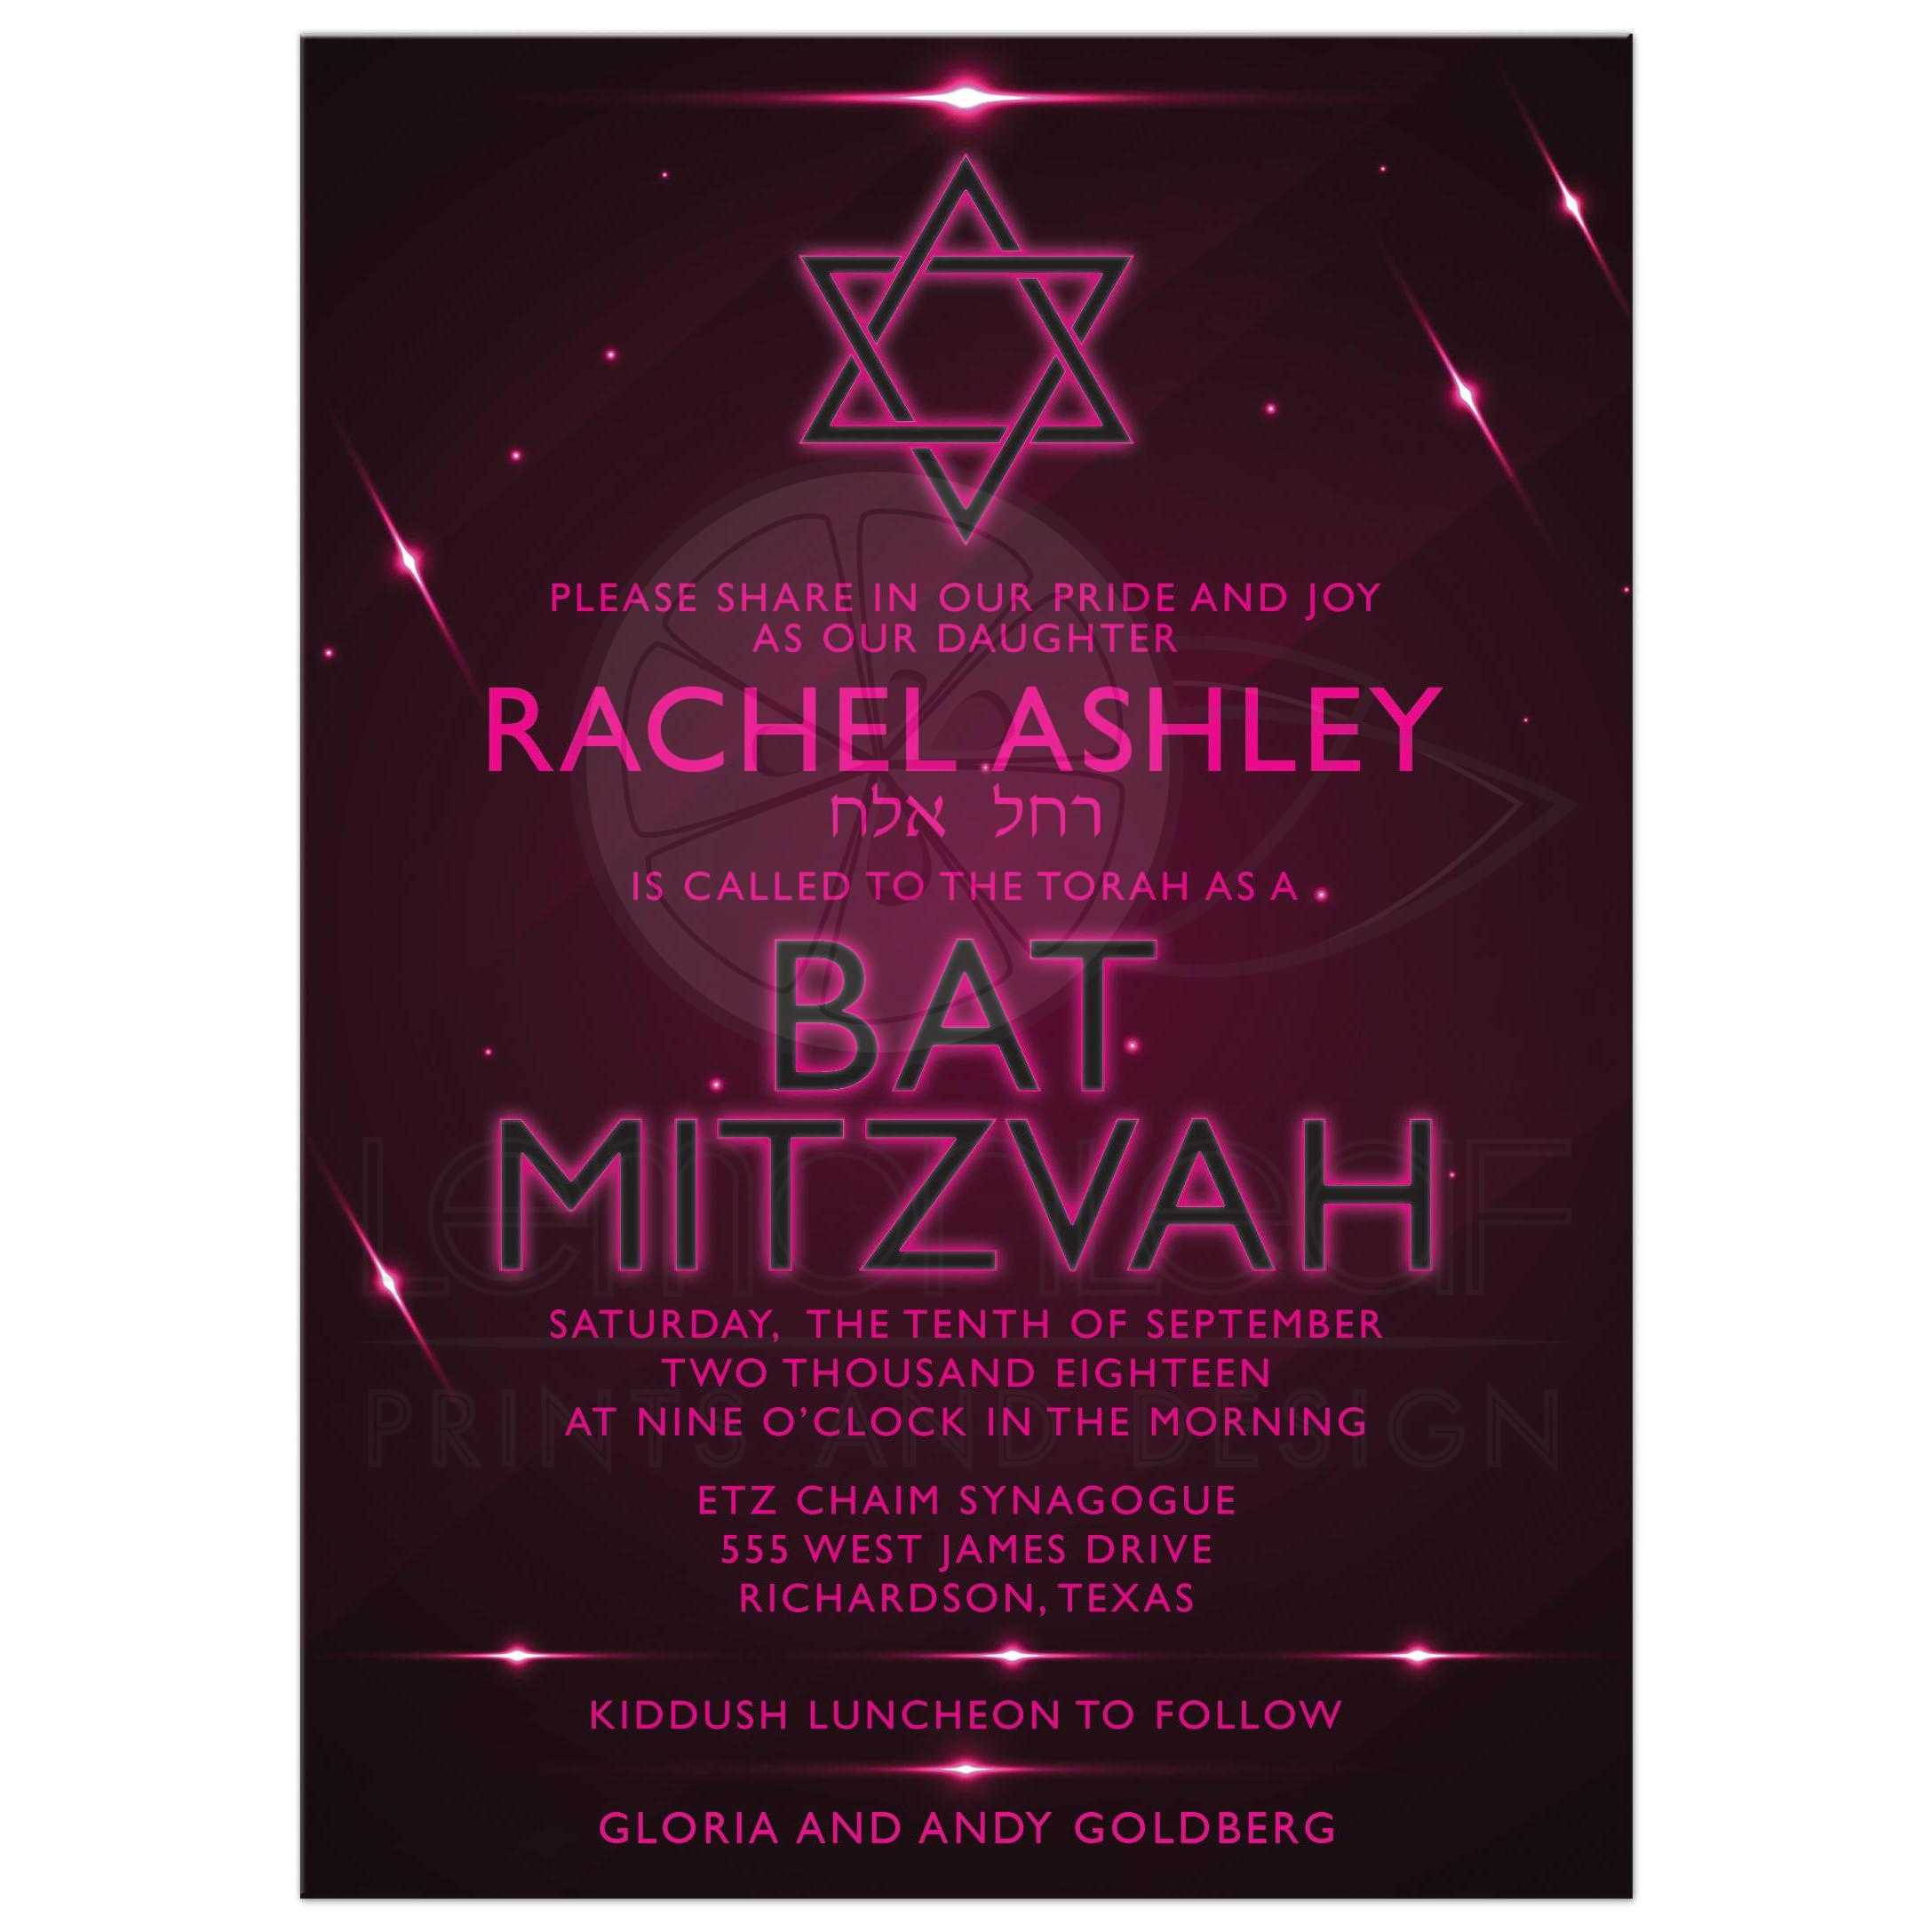 futuristic nightclub poster style bat mitzvah invitation pink purple